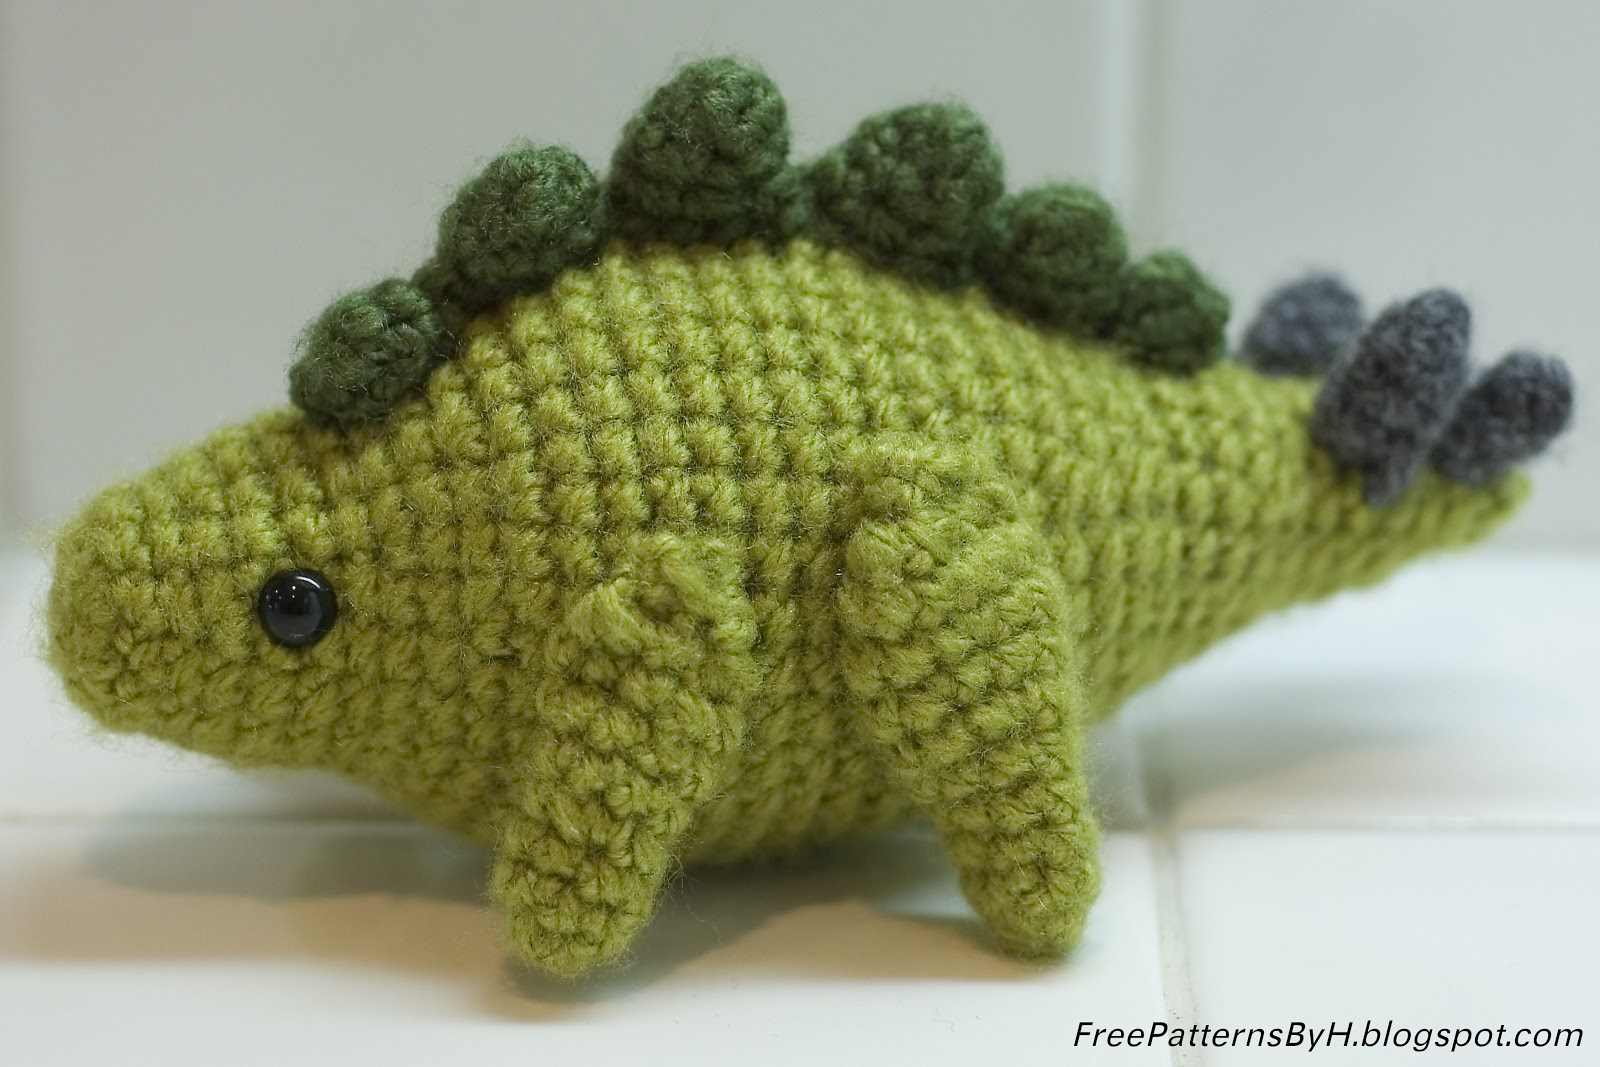 Free Patterns by H: Stegosaurus Amigurumi